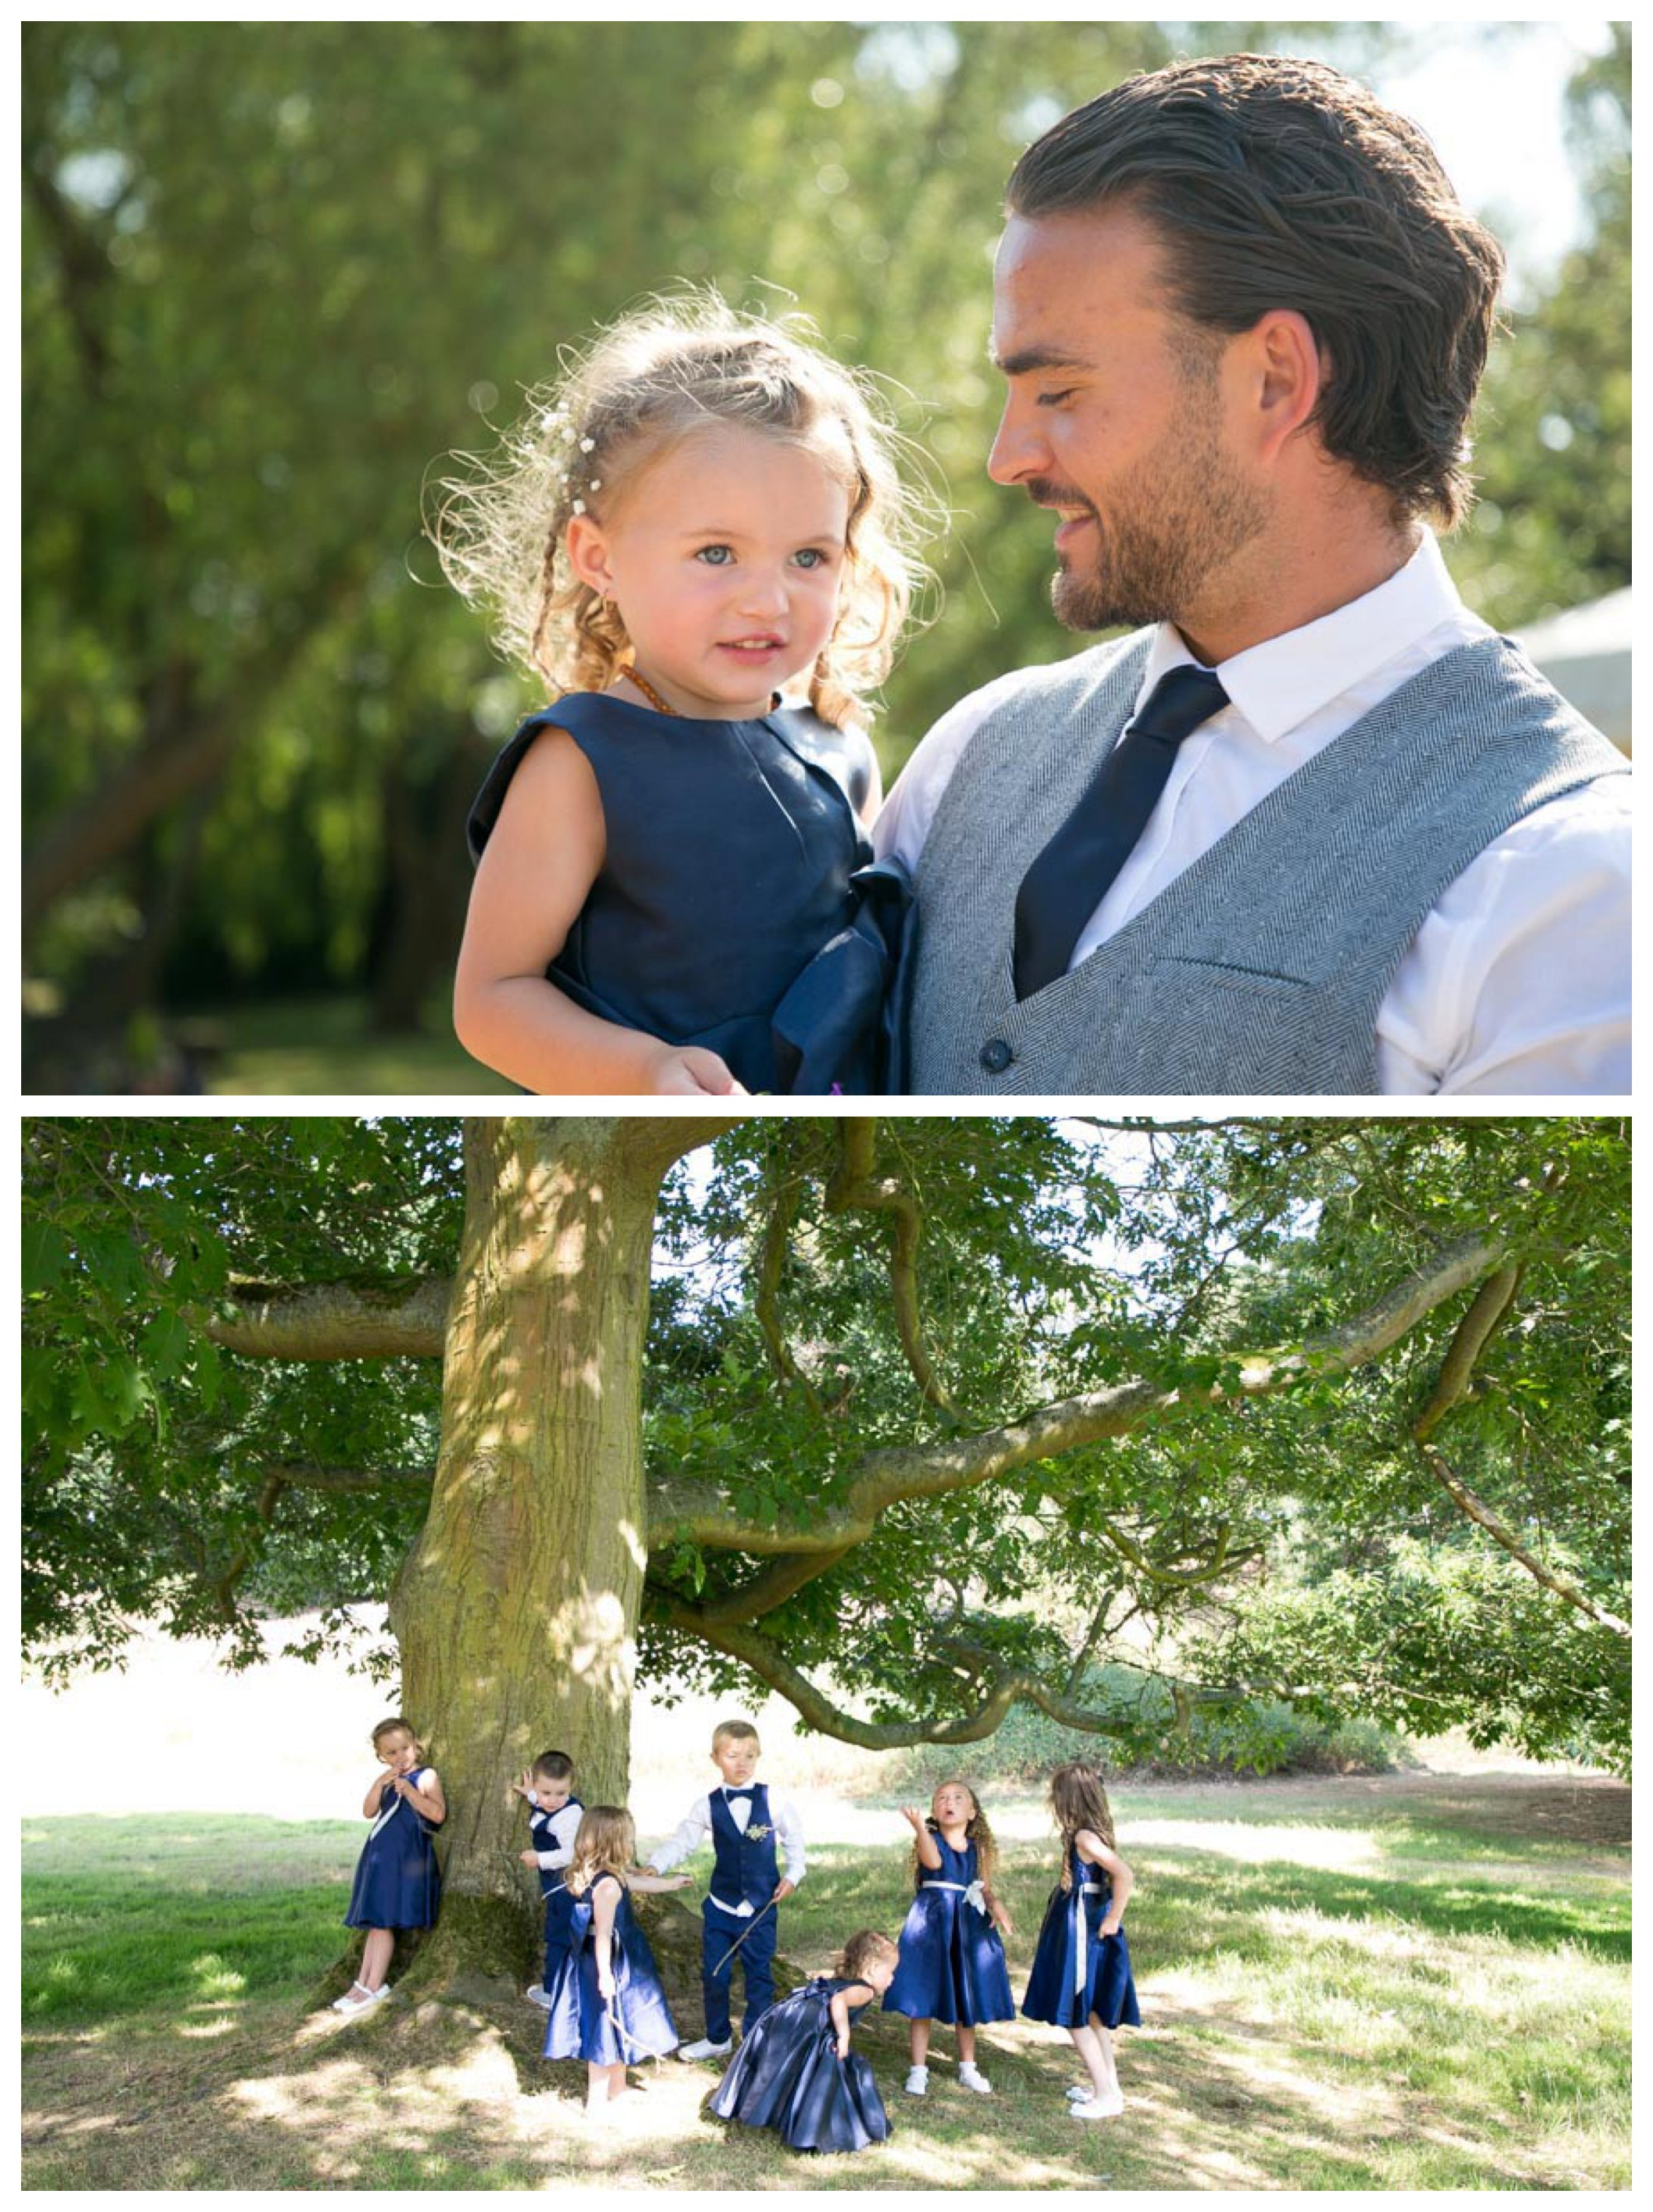 bridesmaids and page boys in sunshine wearing dark blue